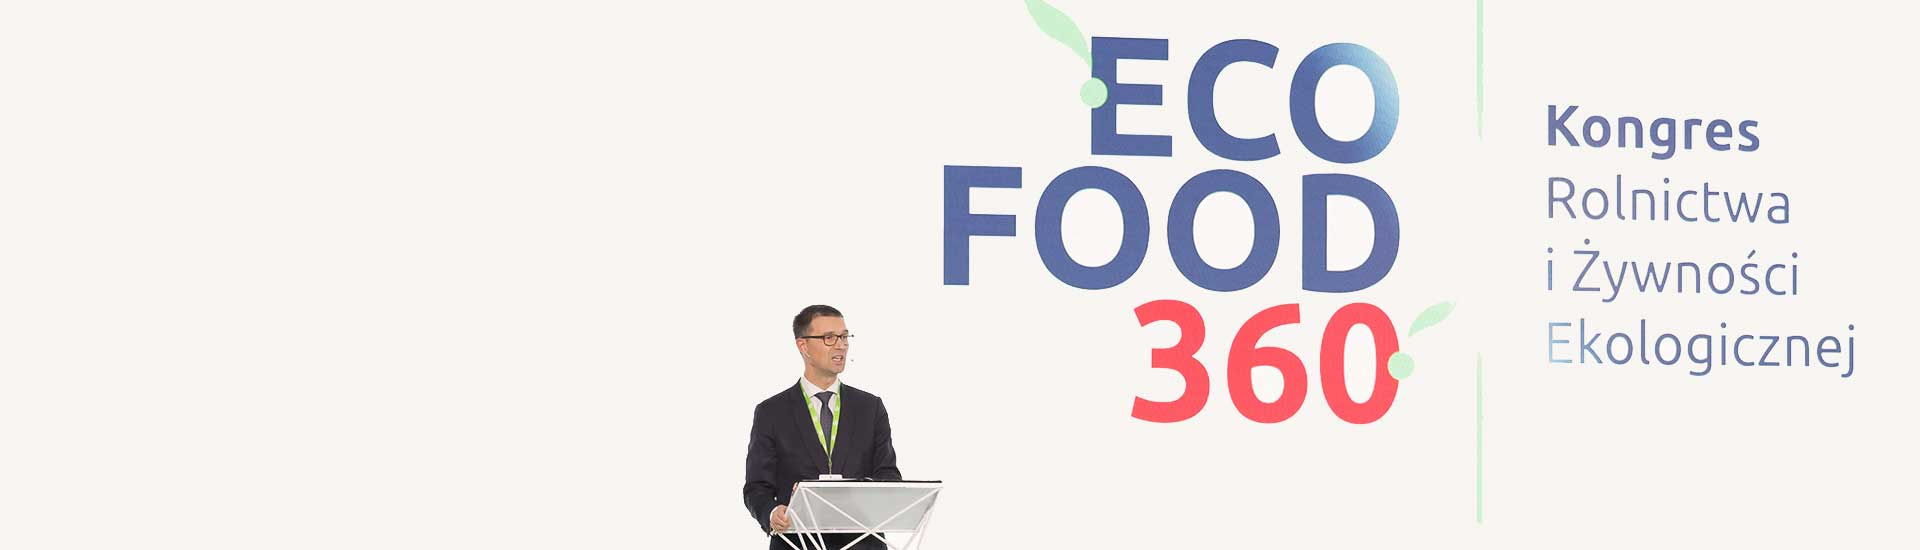 Eco Food 360 – first congress on agriculture and organic food organized by Carrefour Poland